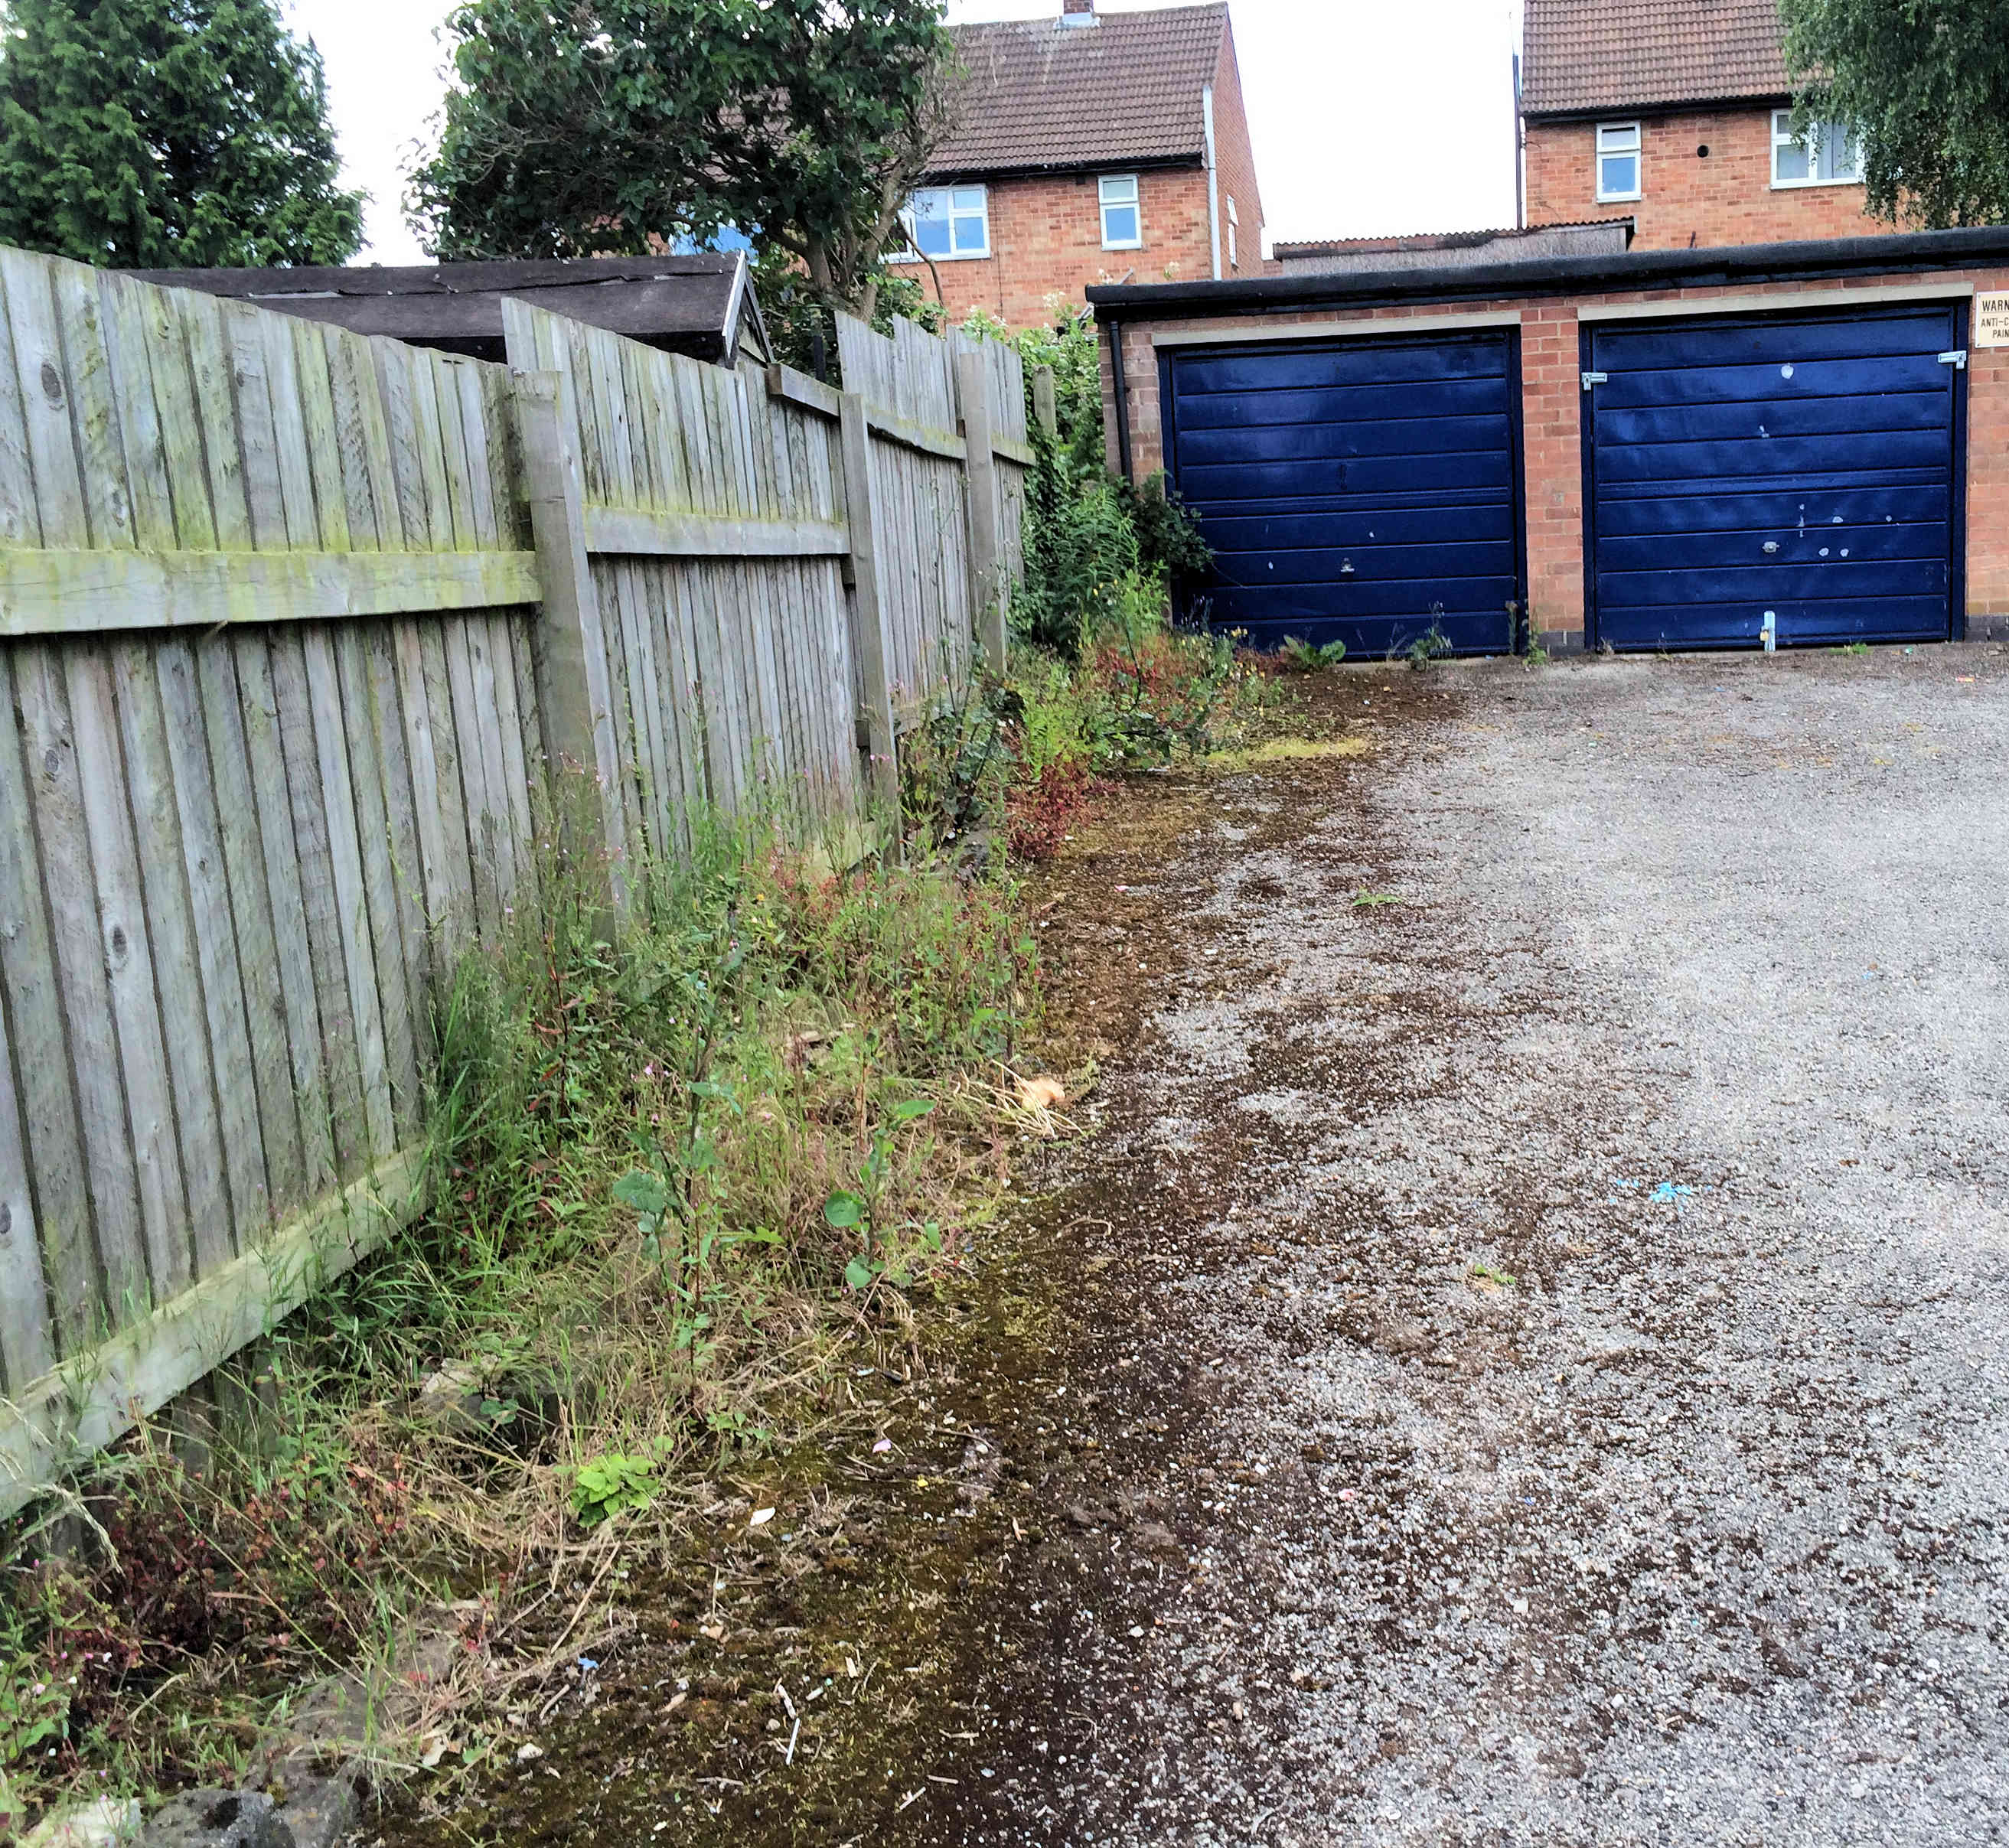 Marston Avenue garage area has still not been cleaned up and resurfaced. We've registered a formal complaint